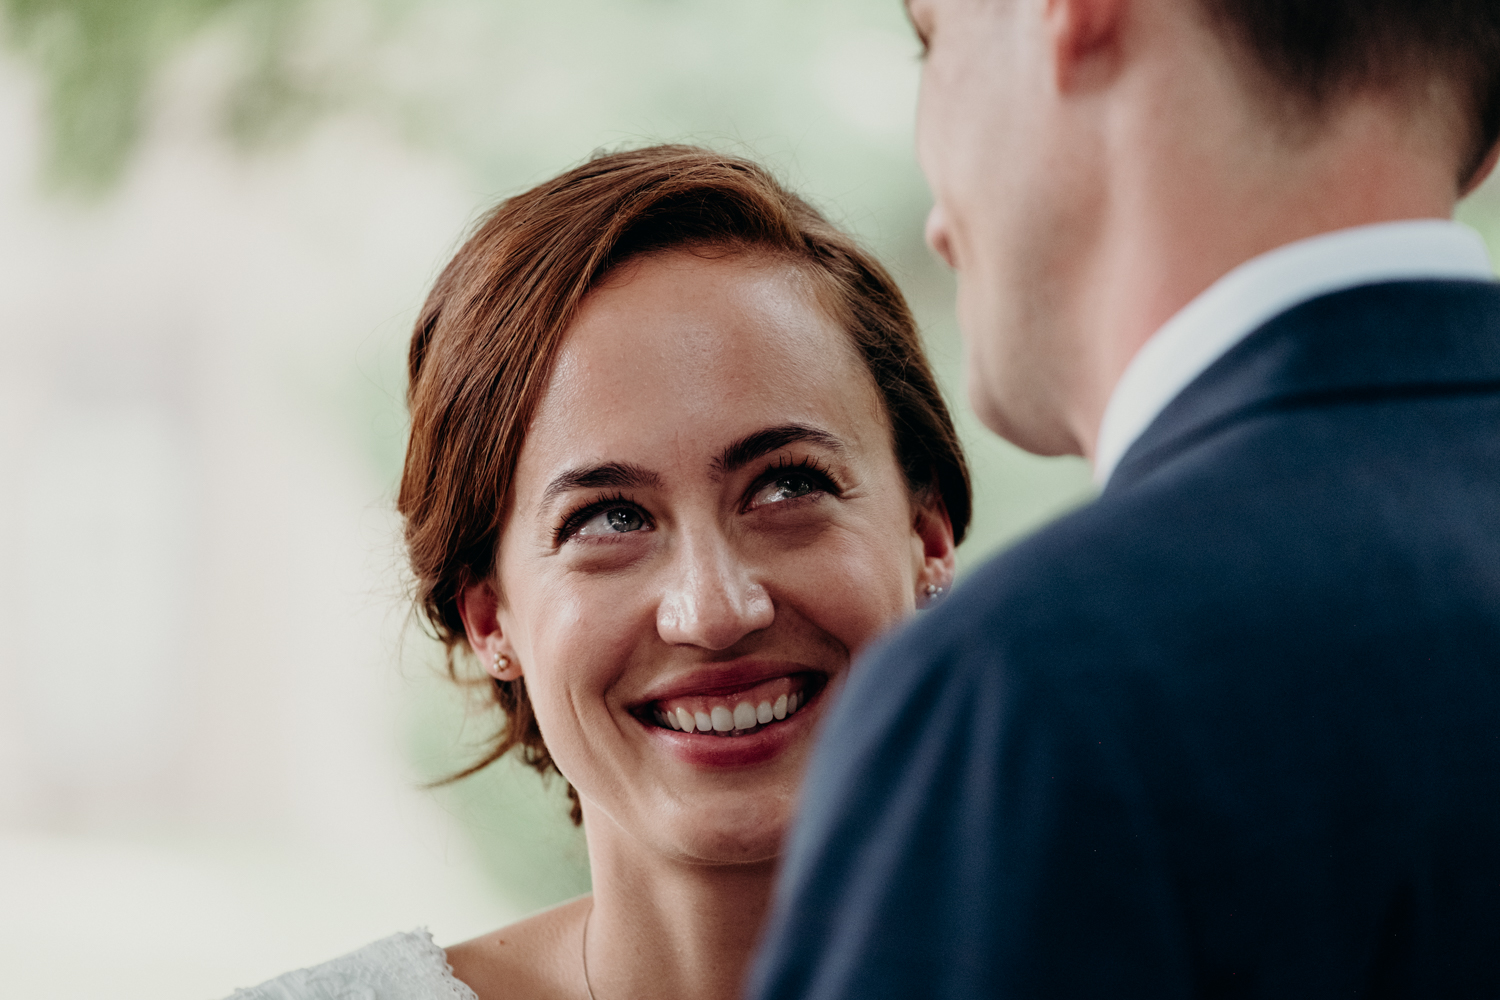 bride watches groom during wedding vows